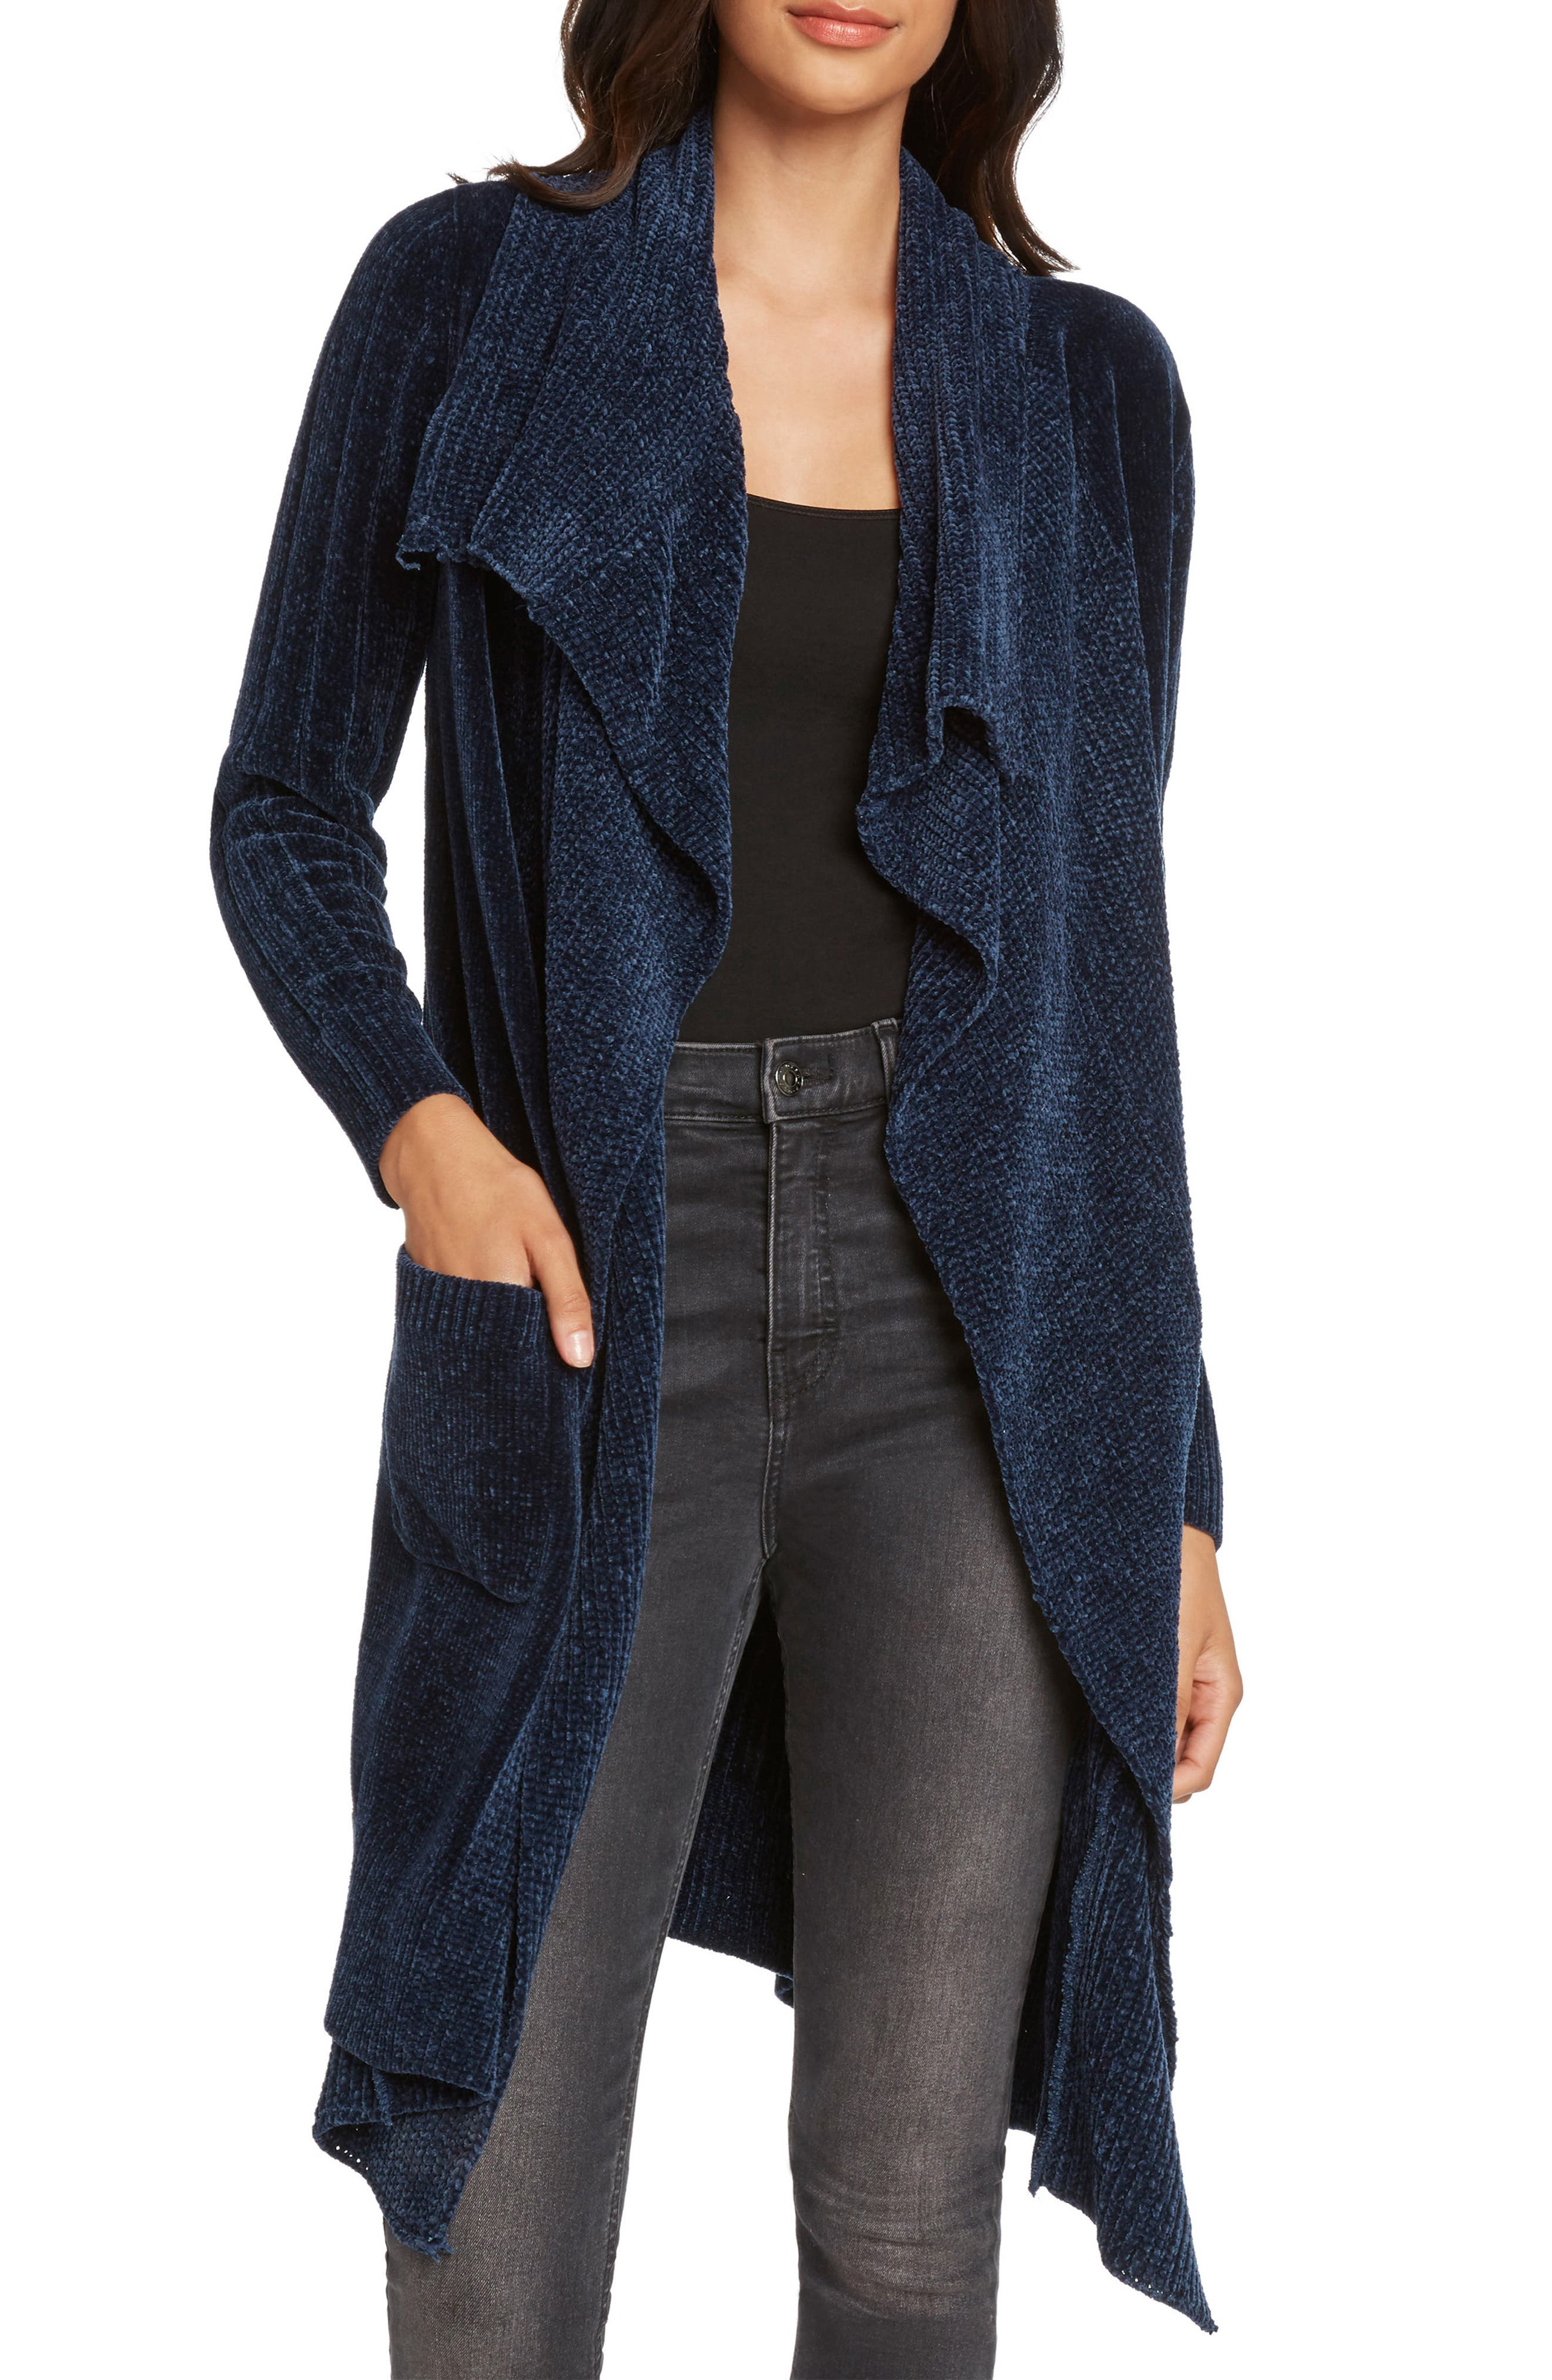 WILLOW & CLAY Chenille Shawl Collar Cardigan in Ink